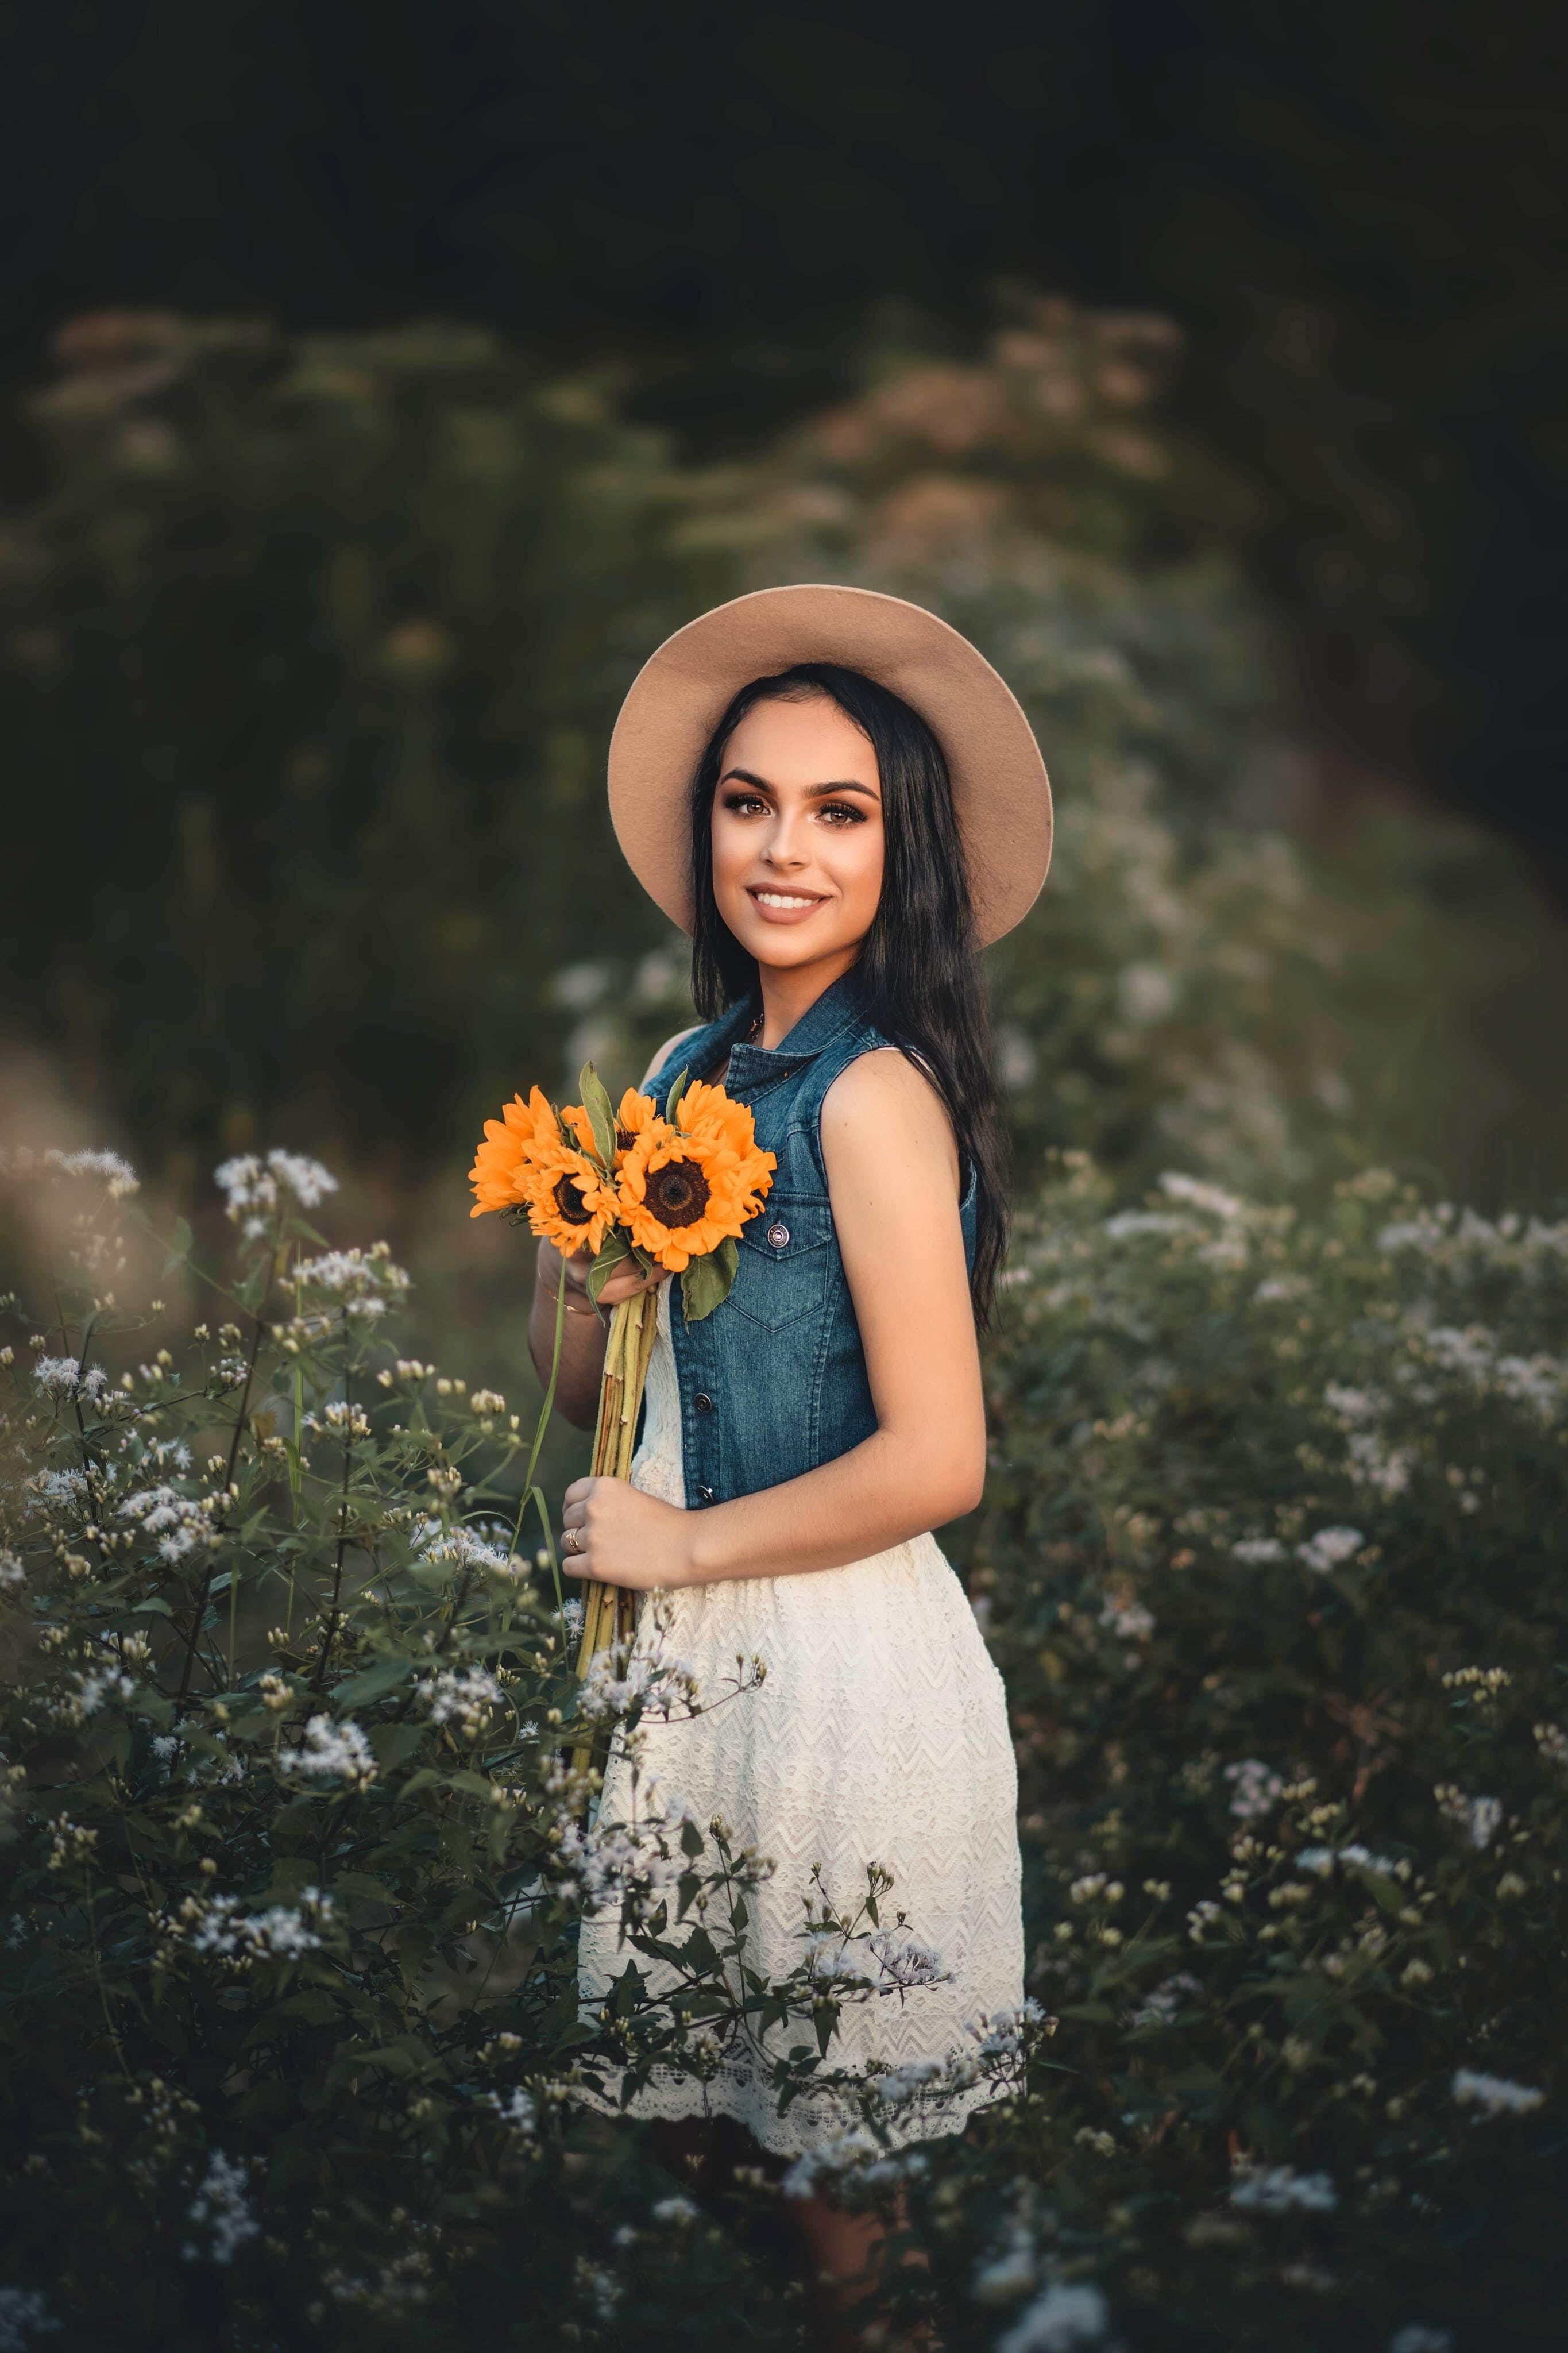 Woman Holding Bouquet of Sunflowers